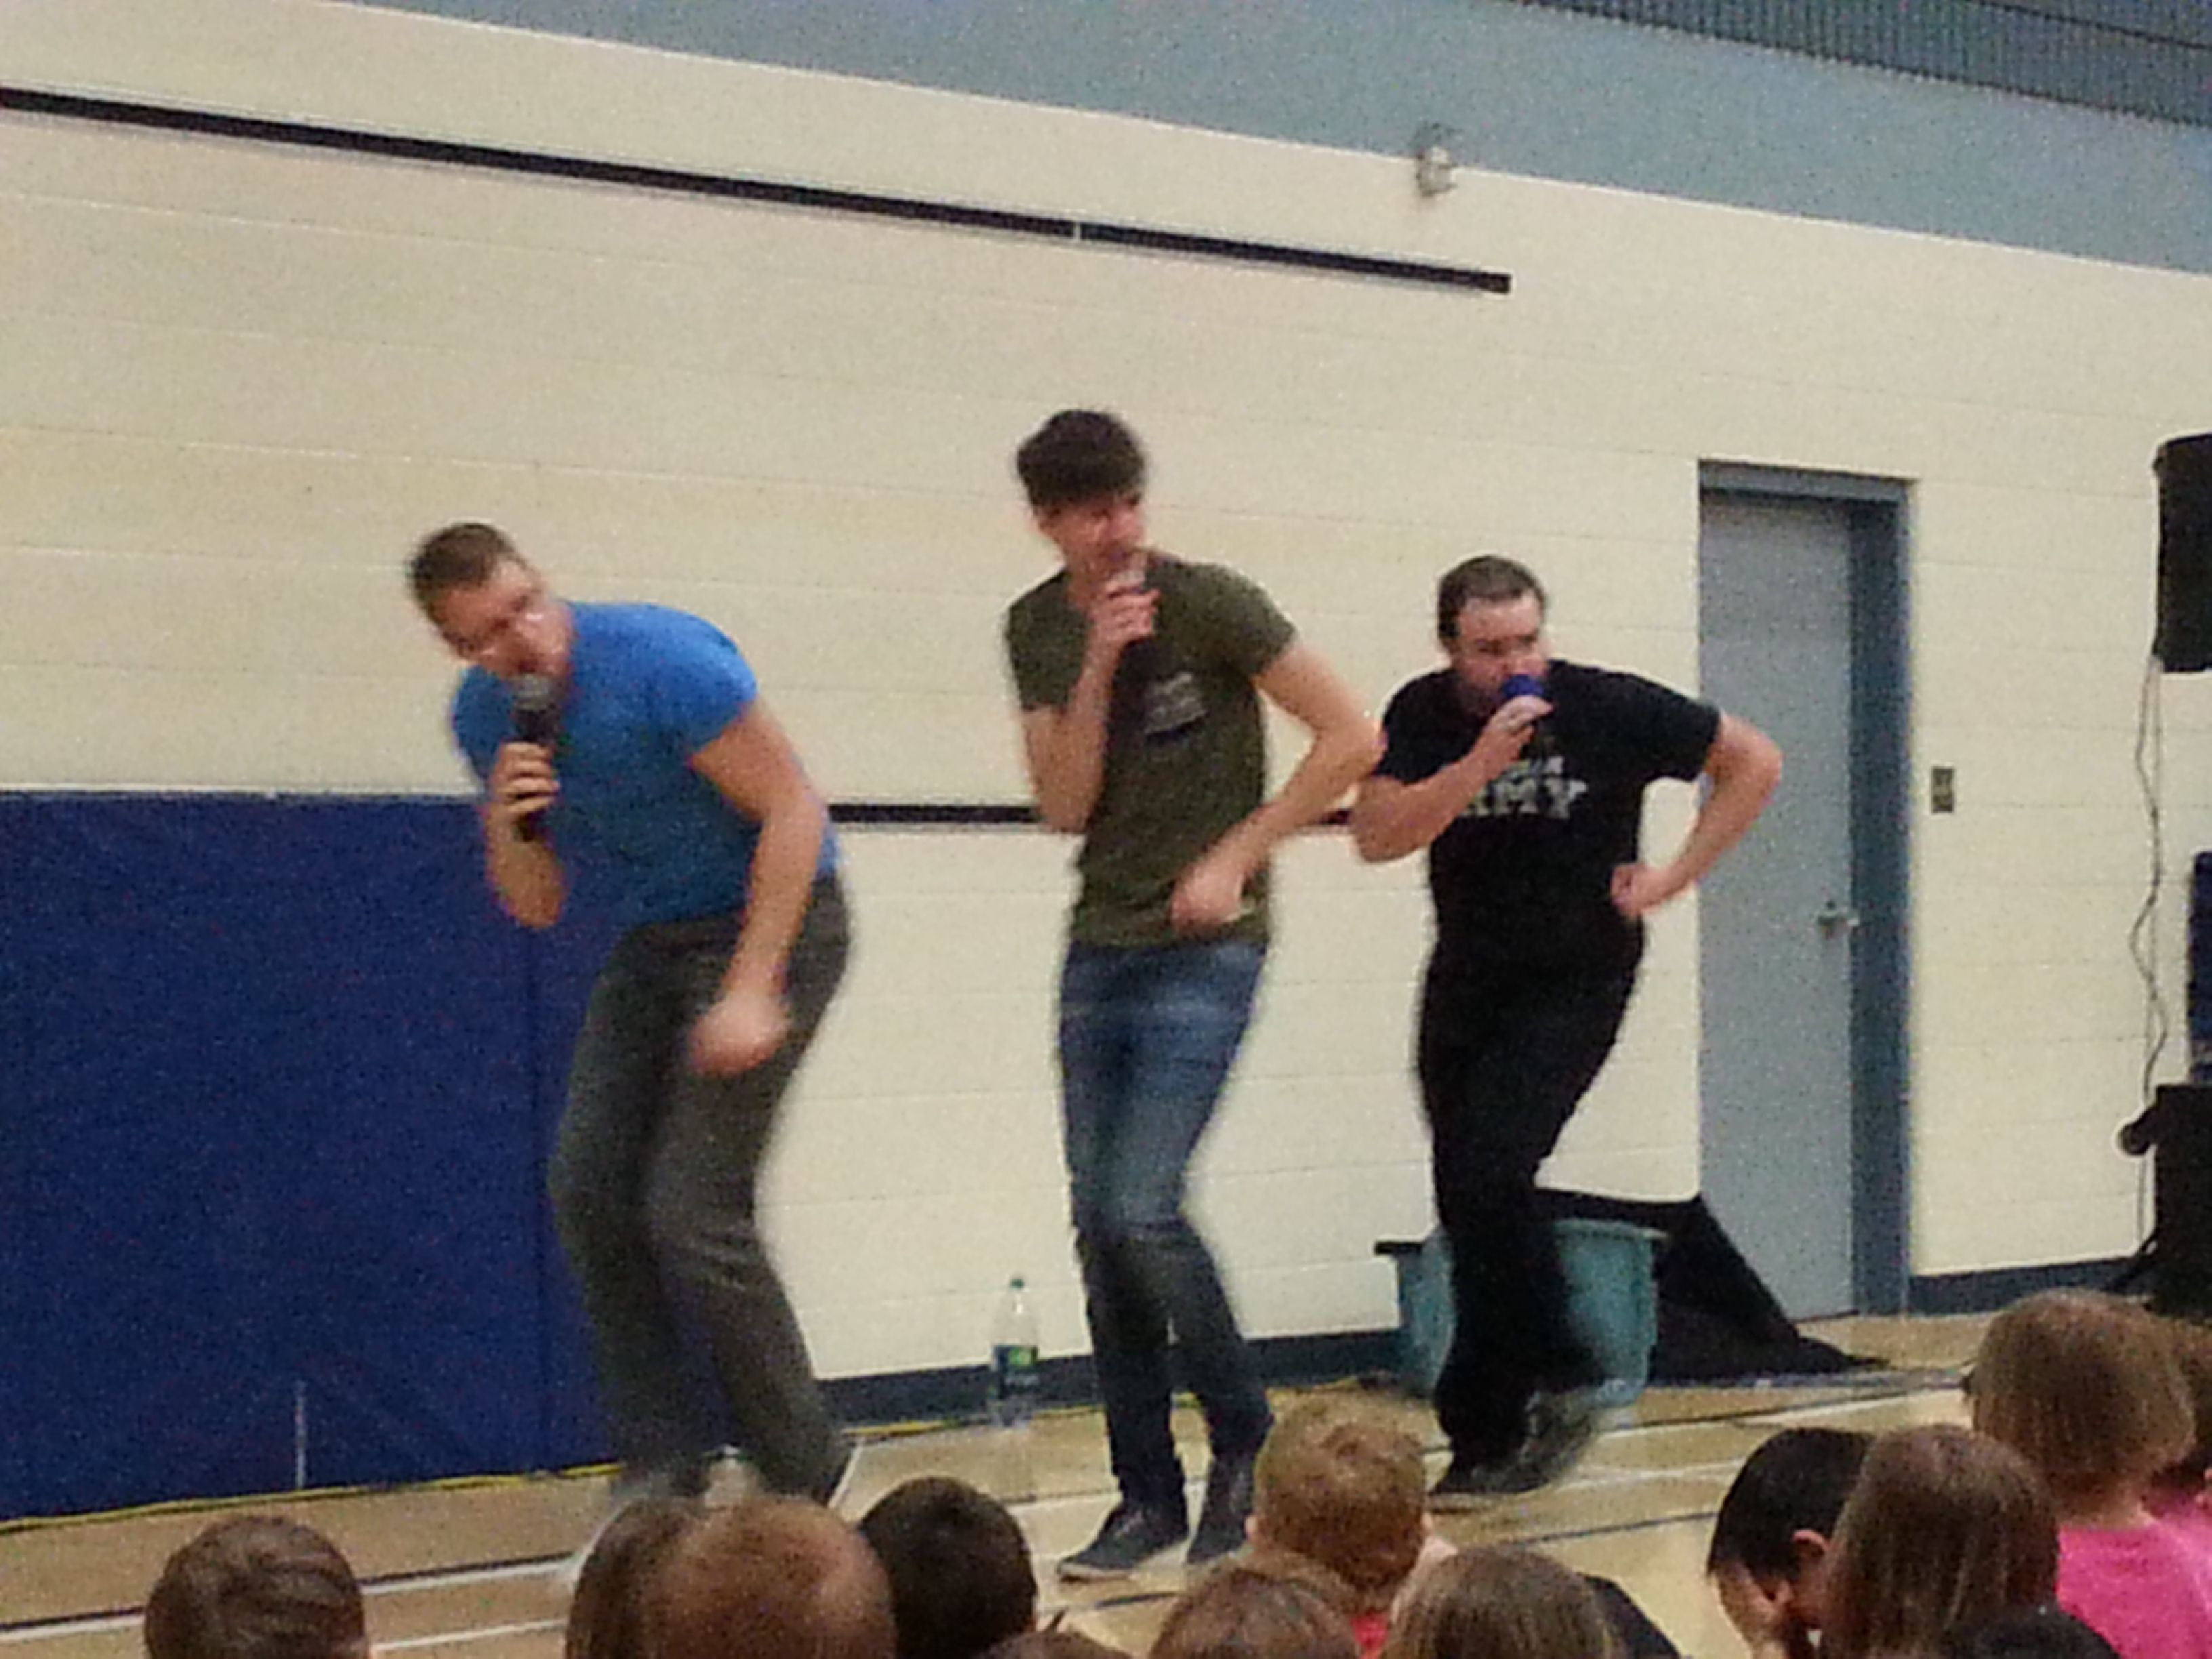 Hoja came to visit our school for a great performance!  Did you know they make music with only their voices?